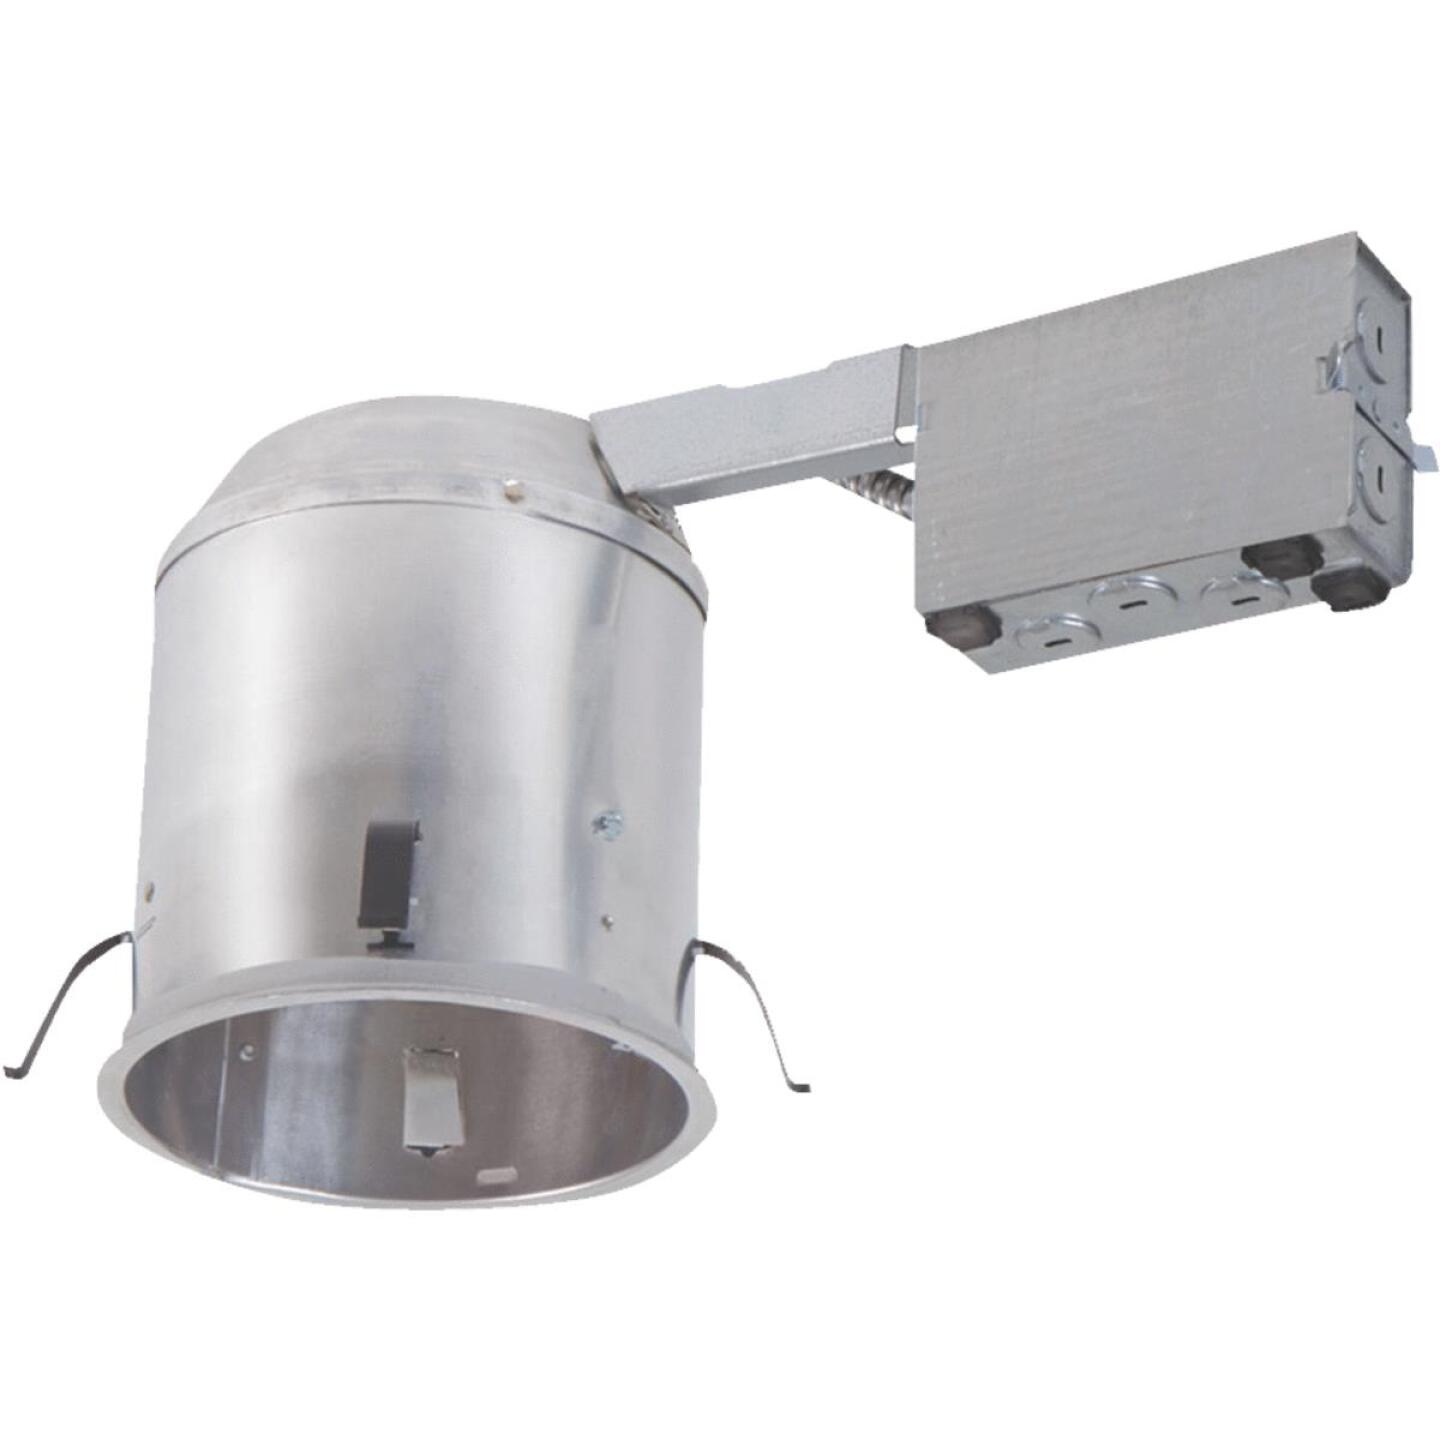 Halo Air-Tite 6 In. Remodel IC Rated LED Recessed Light Fixture Image 1